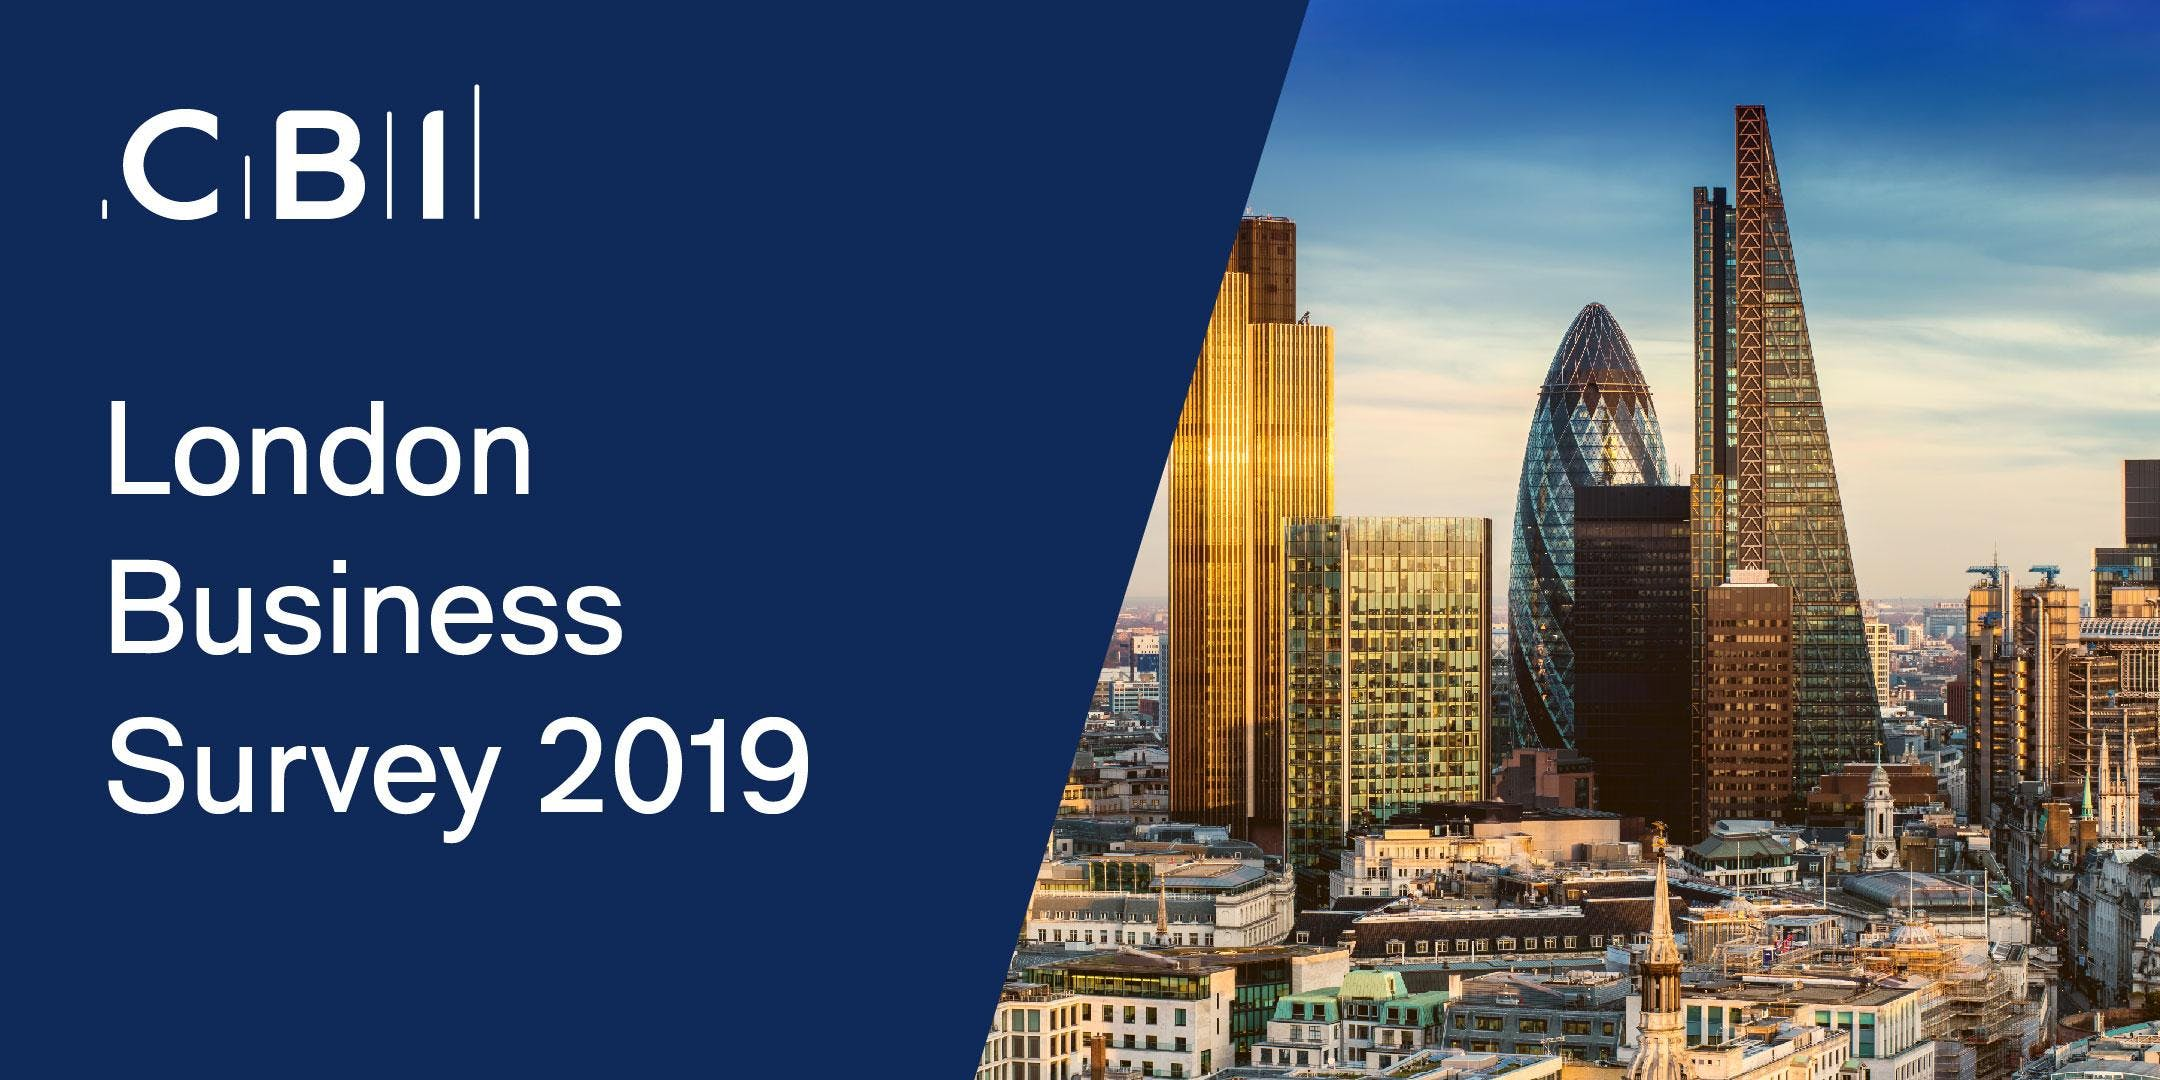 CBI London Business Survey 2019 Launch